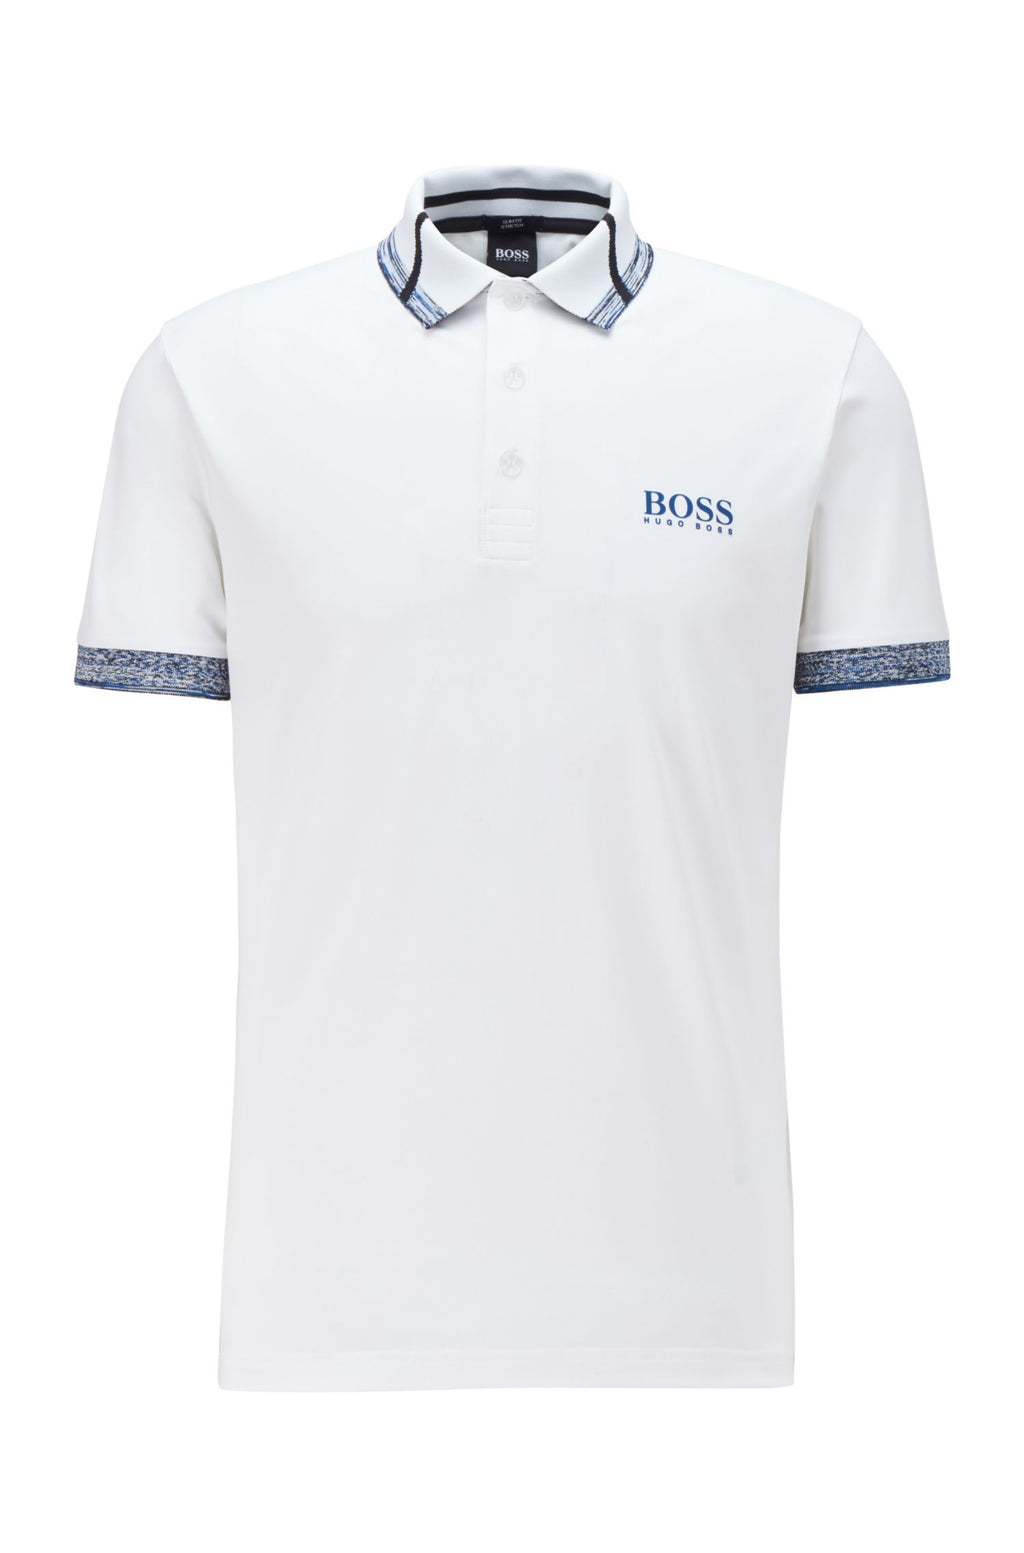 BOSS Logo Polo Shirt White/Blue - Maison De Fashion